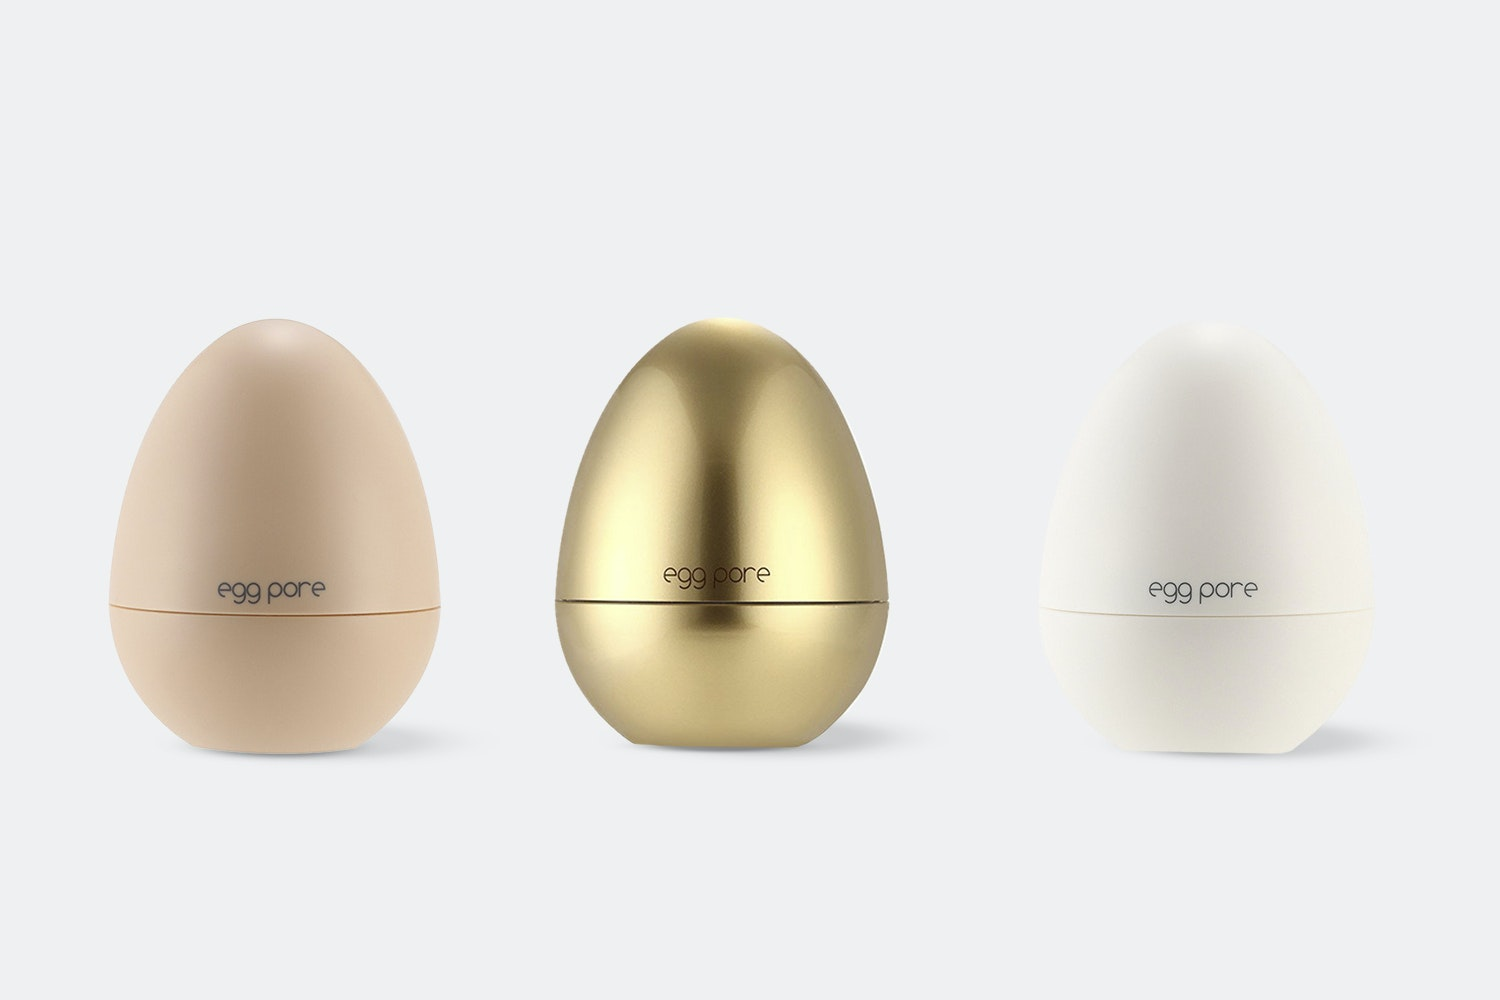 Tony Moly Egg Pore Bundle